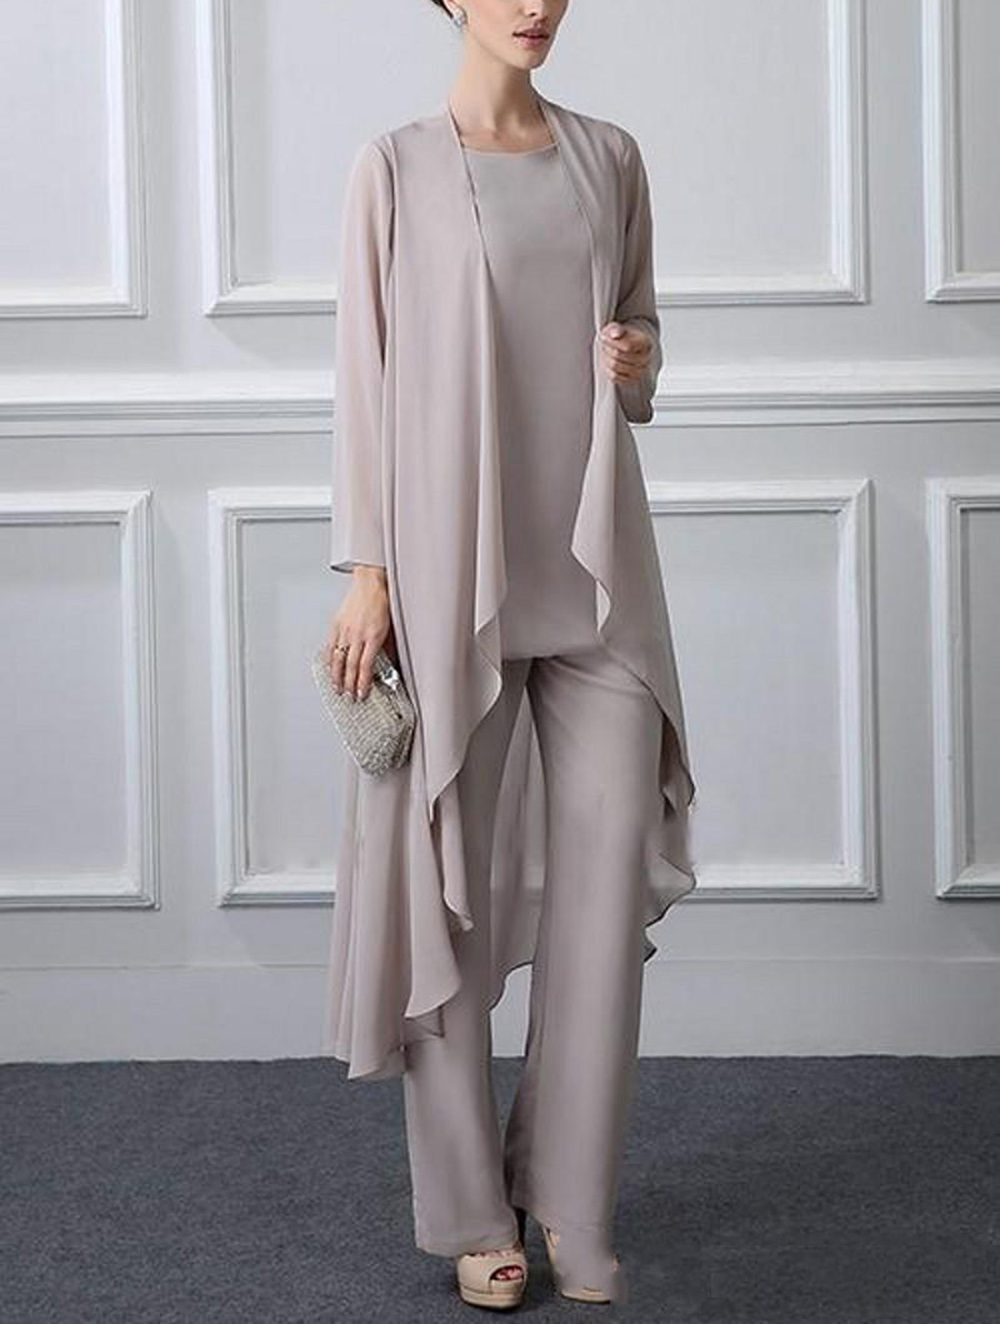 Women's 3 Pieces Elegant Ruffles Chiffon Mother Of The Bride Dress Pants Suit Long Sleeves With Jacket Outfit For Wedding Groom